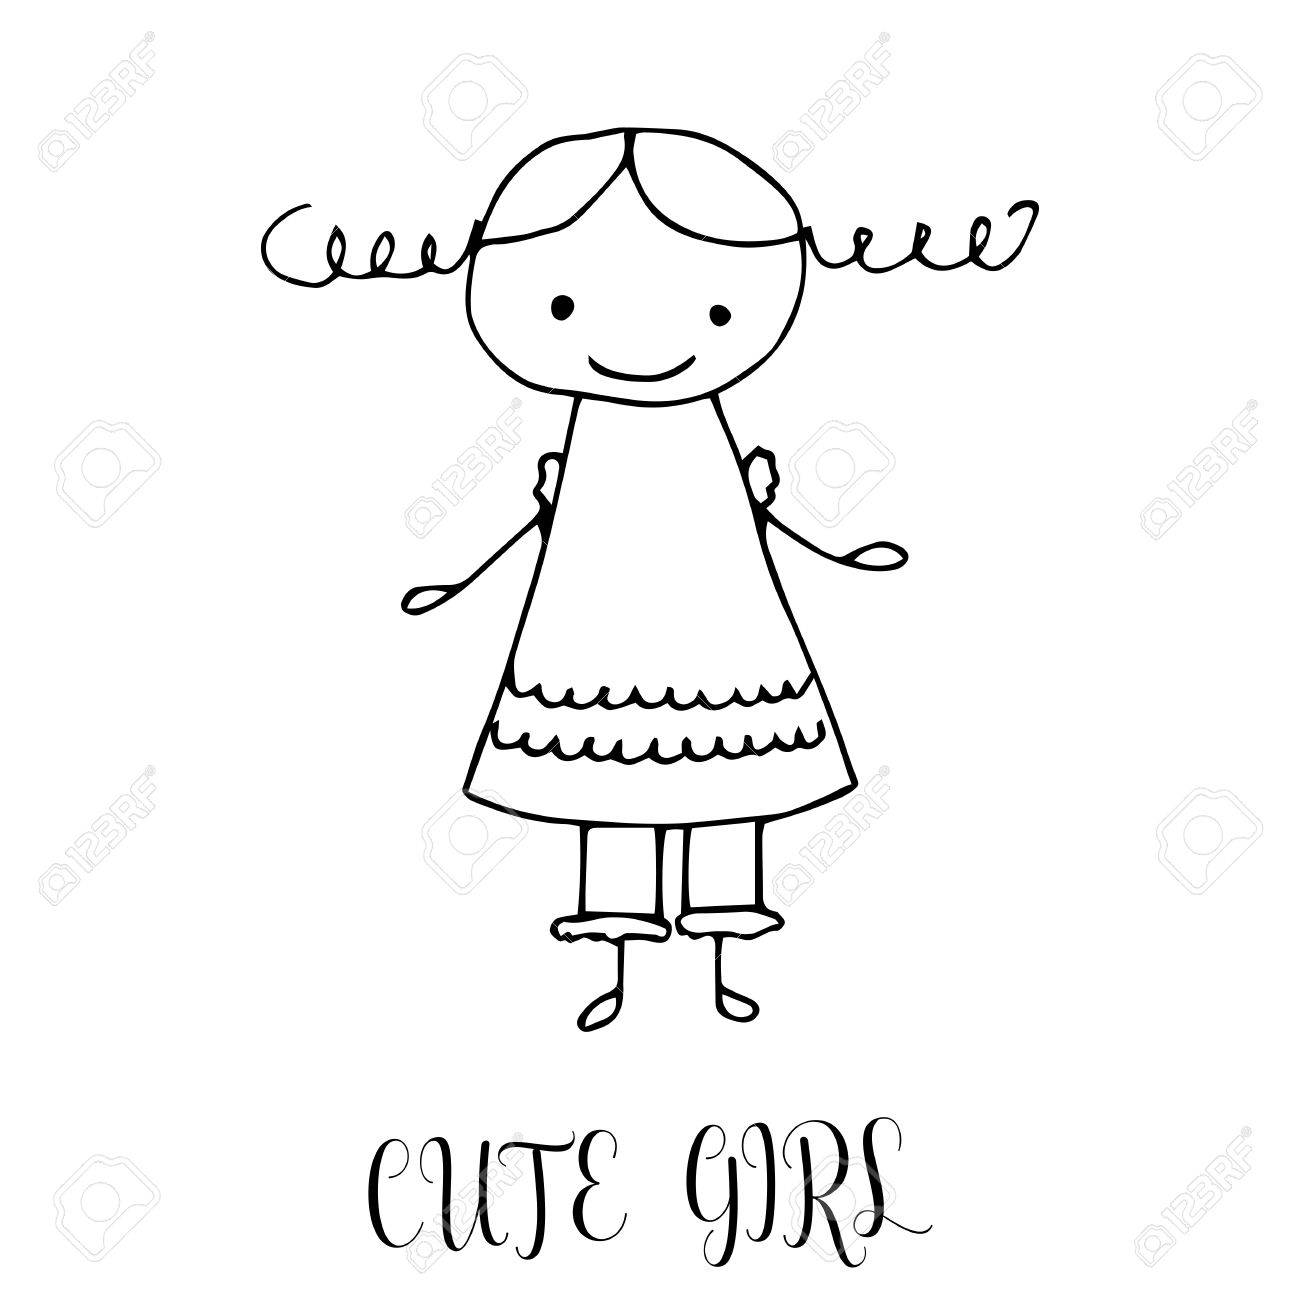 Cute Little Girl Hand Drawing In Funny Kids Style Design Element Royalty Free Cliparts Vectors And Stock Illustration Image 68720637